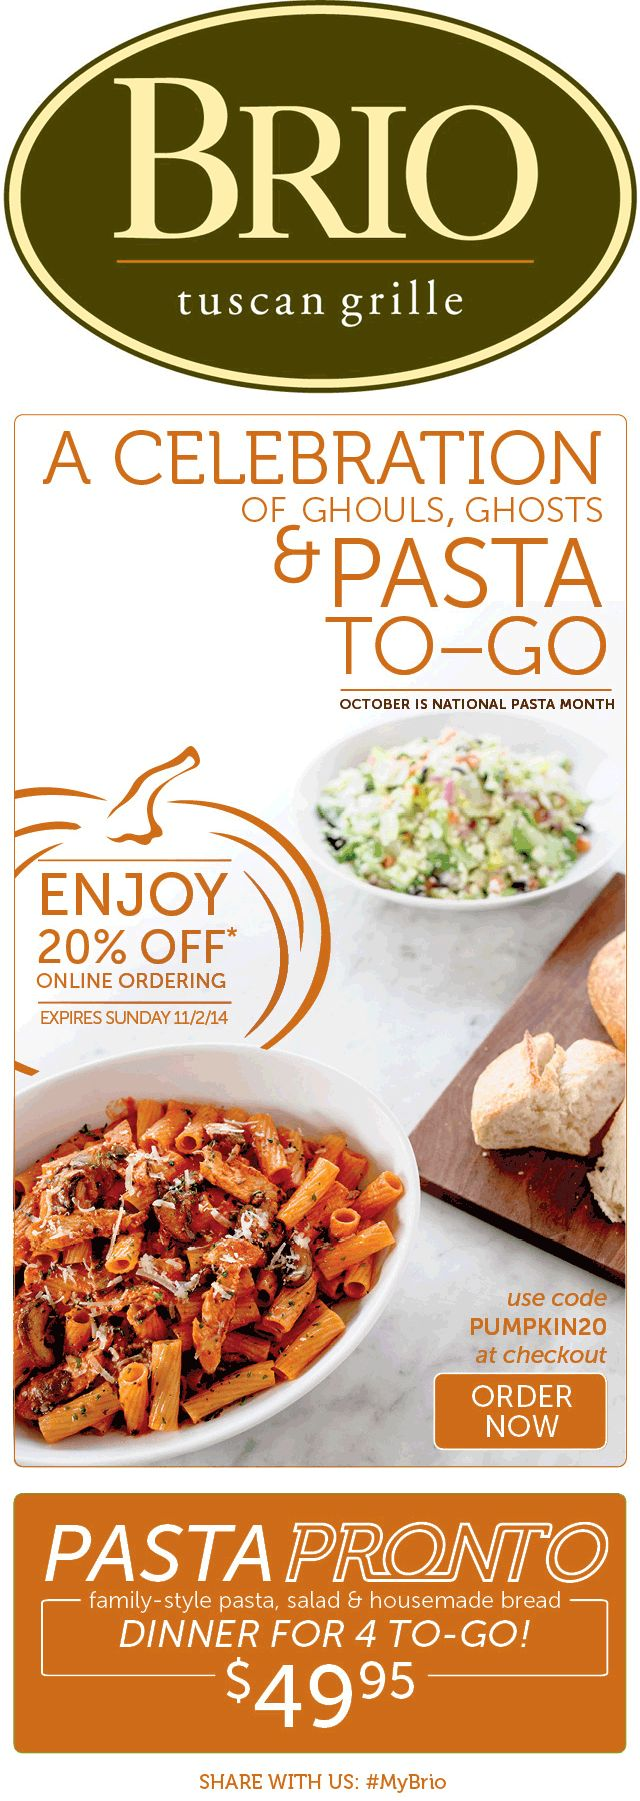 Pinned October 29th: 20% off online orders at #Brio Tuscan Grille via checkout promo PUMPKIN20 #coupon via The #Coupons App